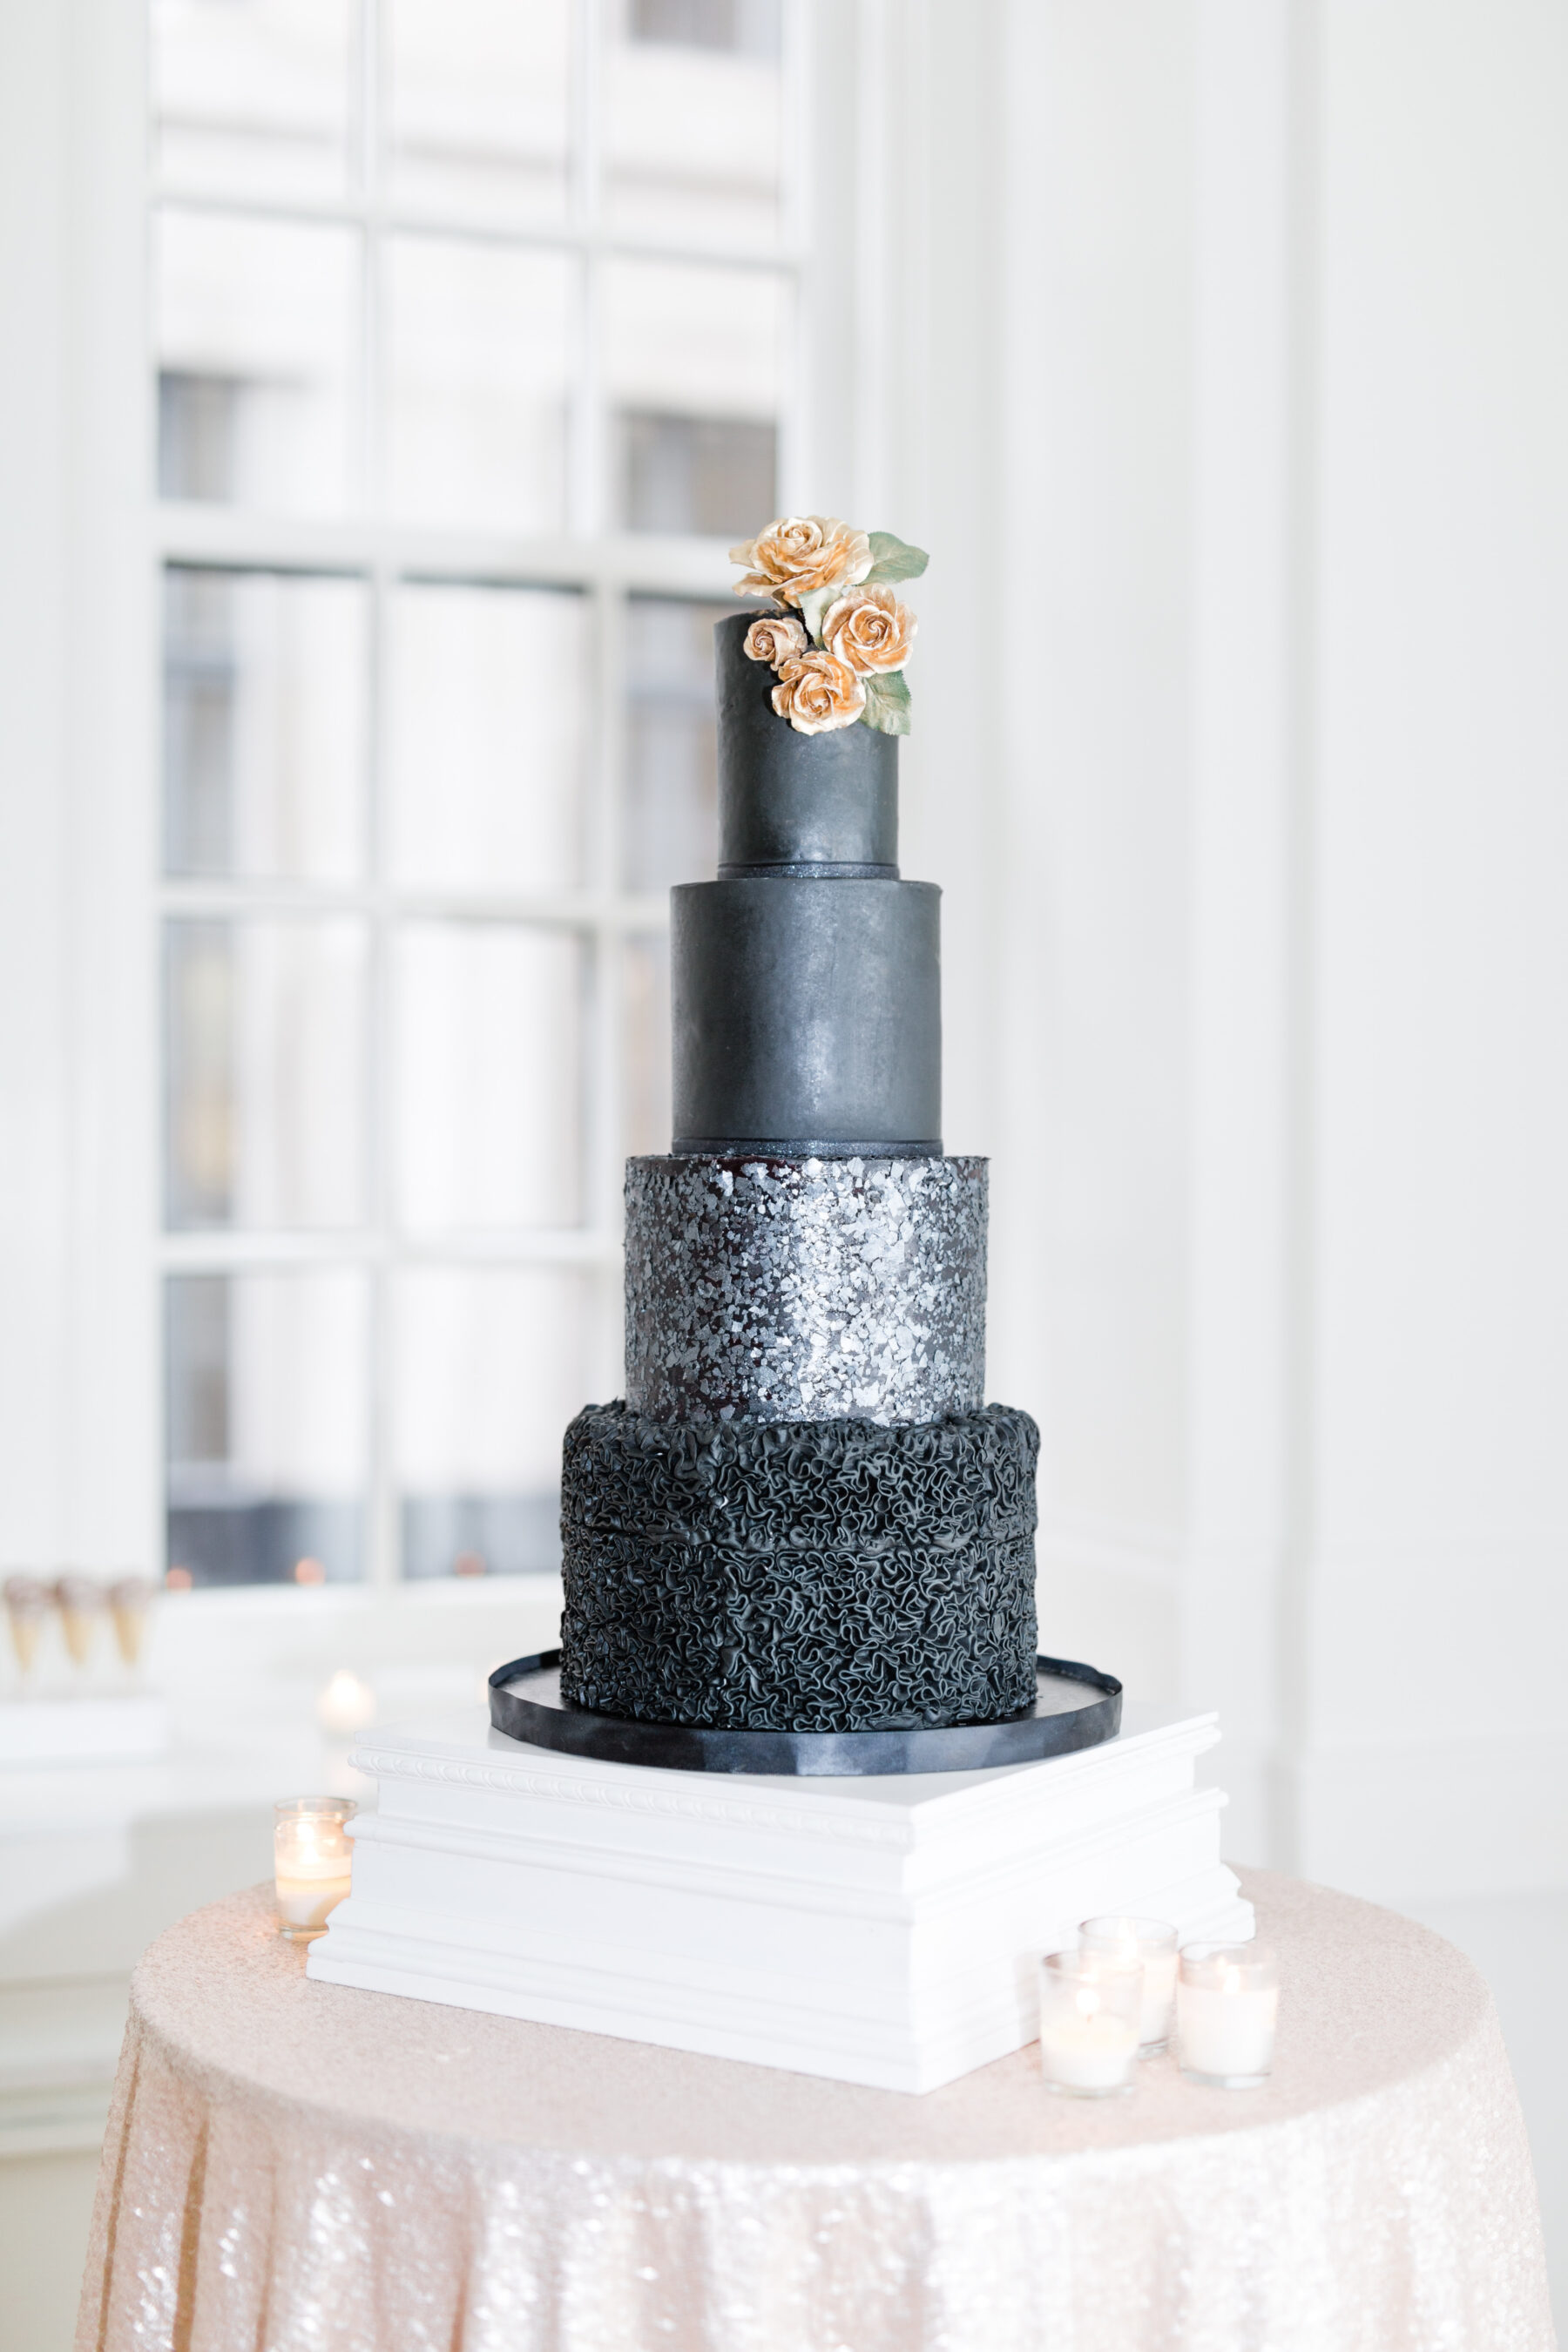 Sparkly black wedding cake: Classic, Yet Modern New Years Eve Wedding Inspiration featured on Nashville Bride Guide